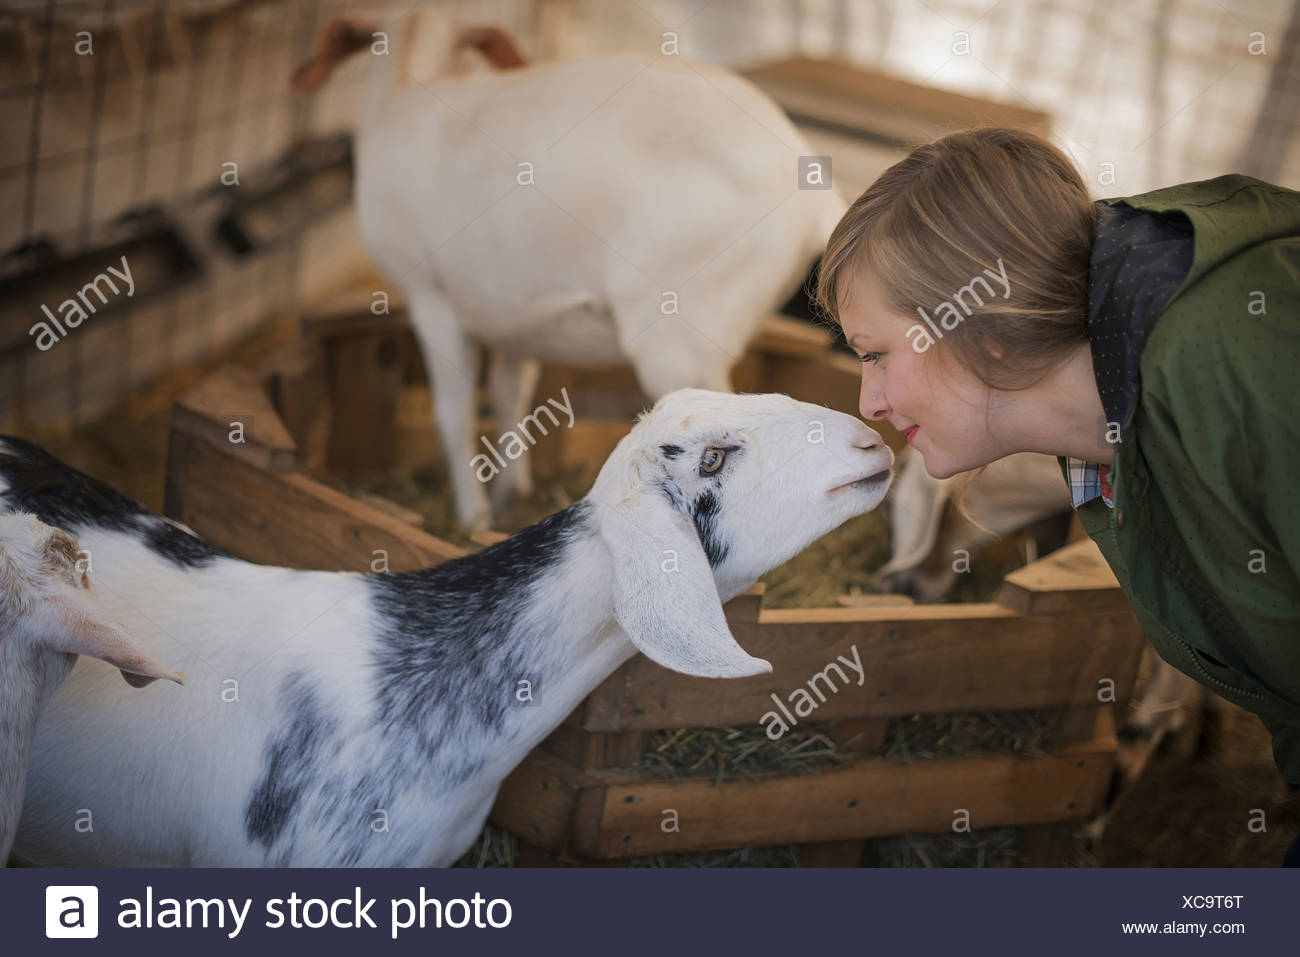 A woman in a stable on an organic farm White and black goats - Stock Image